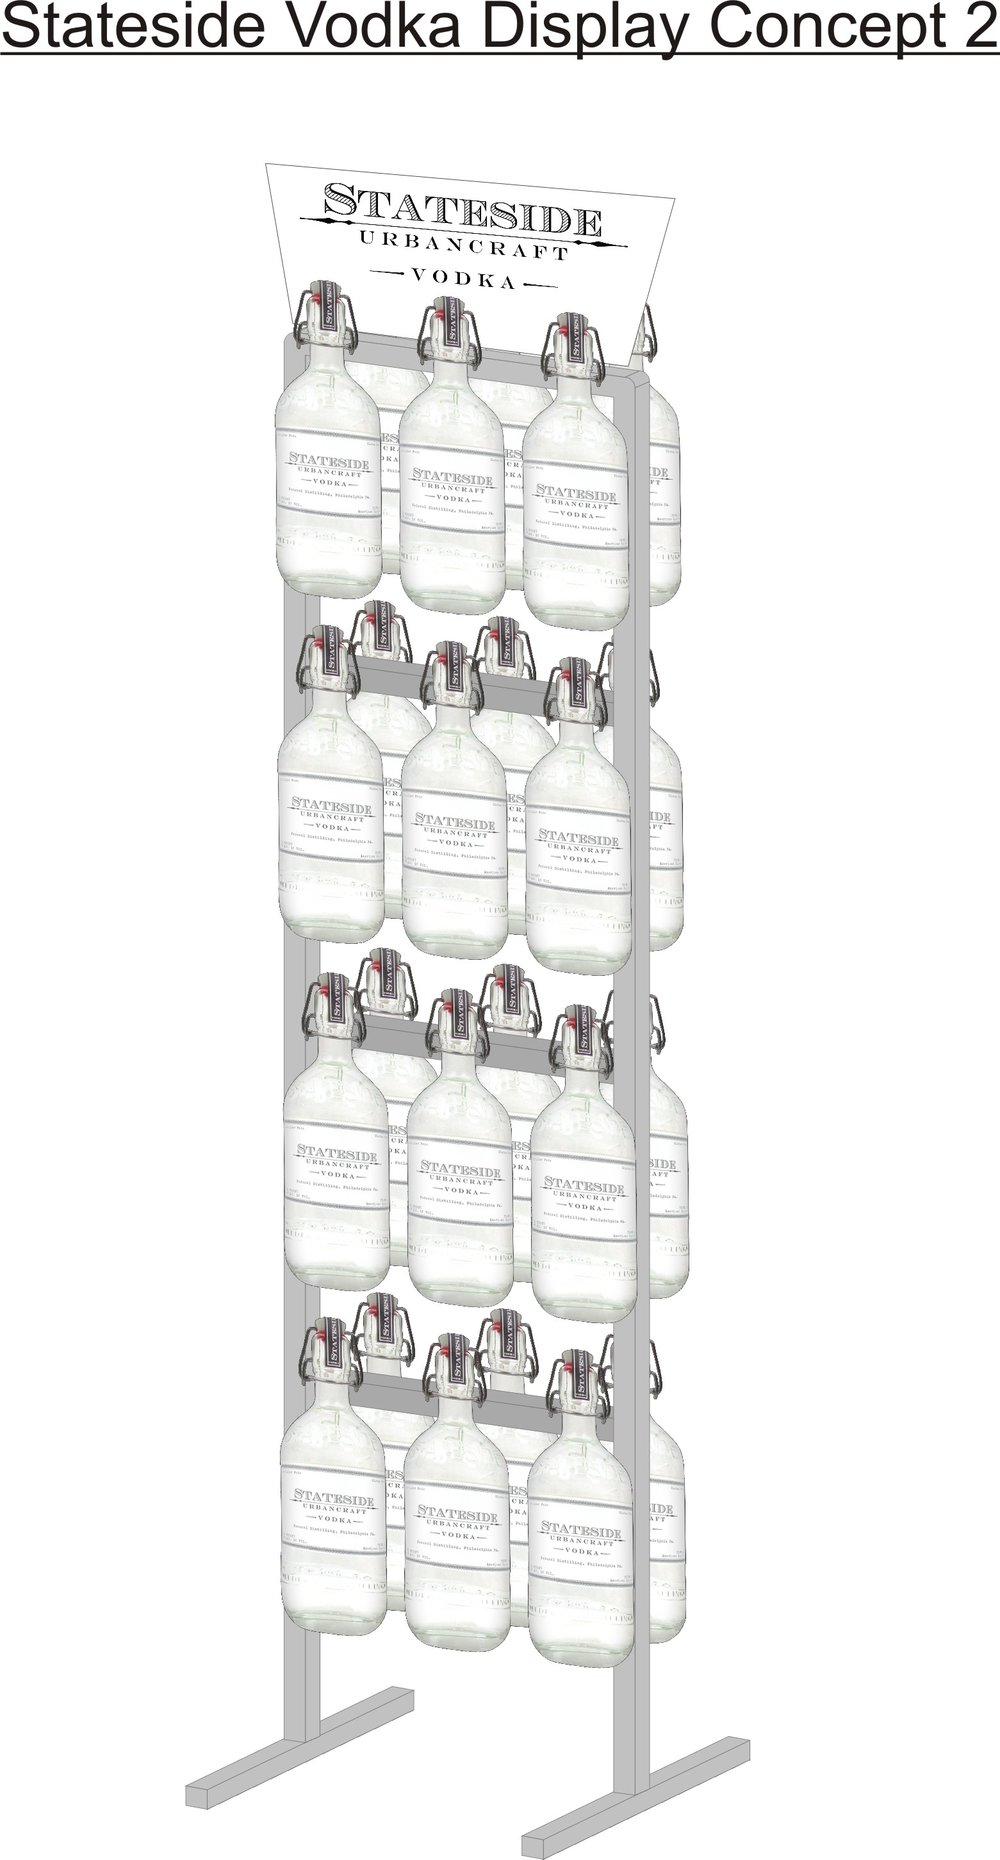 Stateside Vodka Display Concept 2.jpg